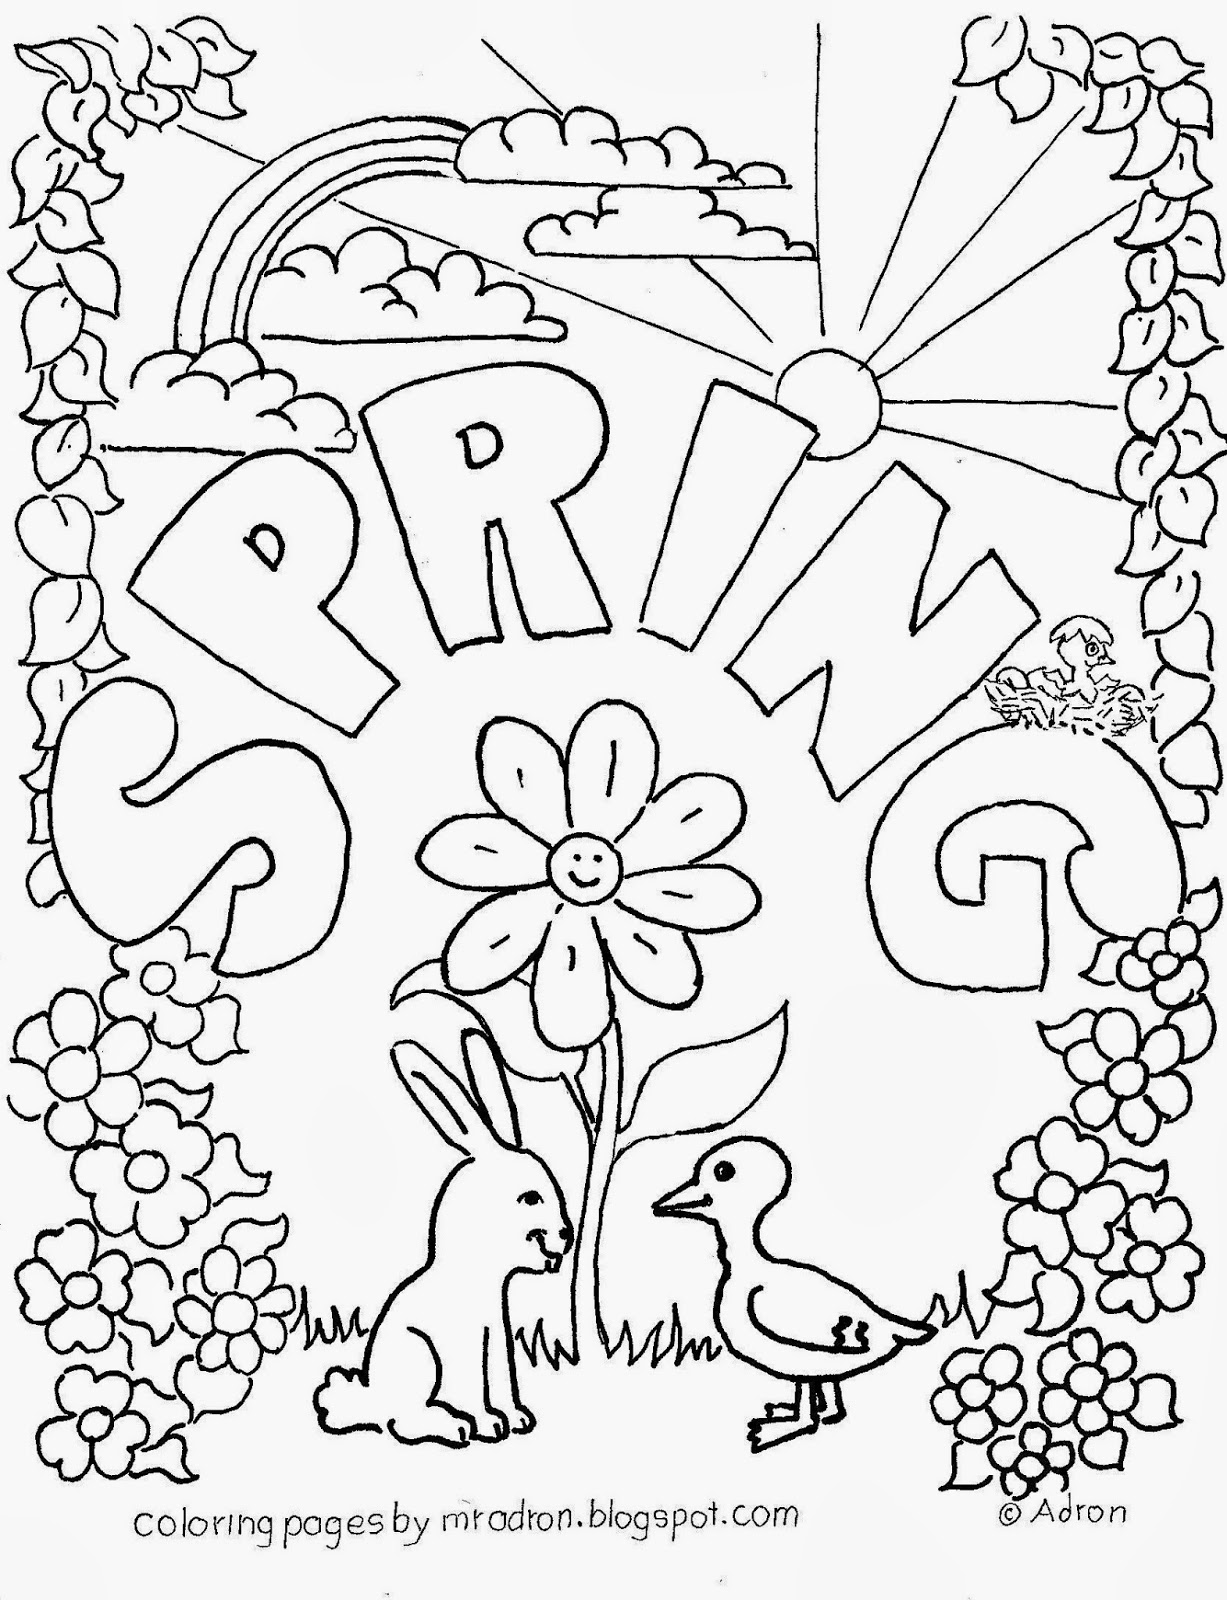 Spring season #3 (Nature) – Printable coloring pages